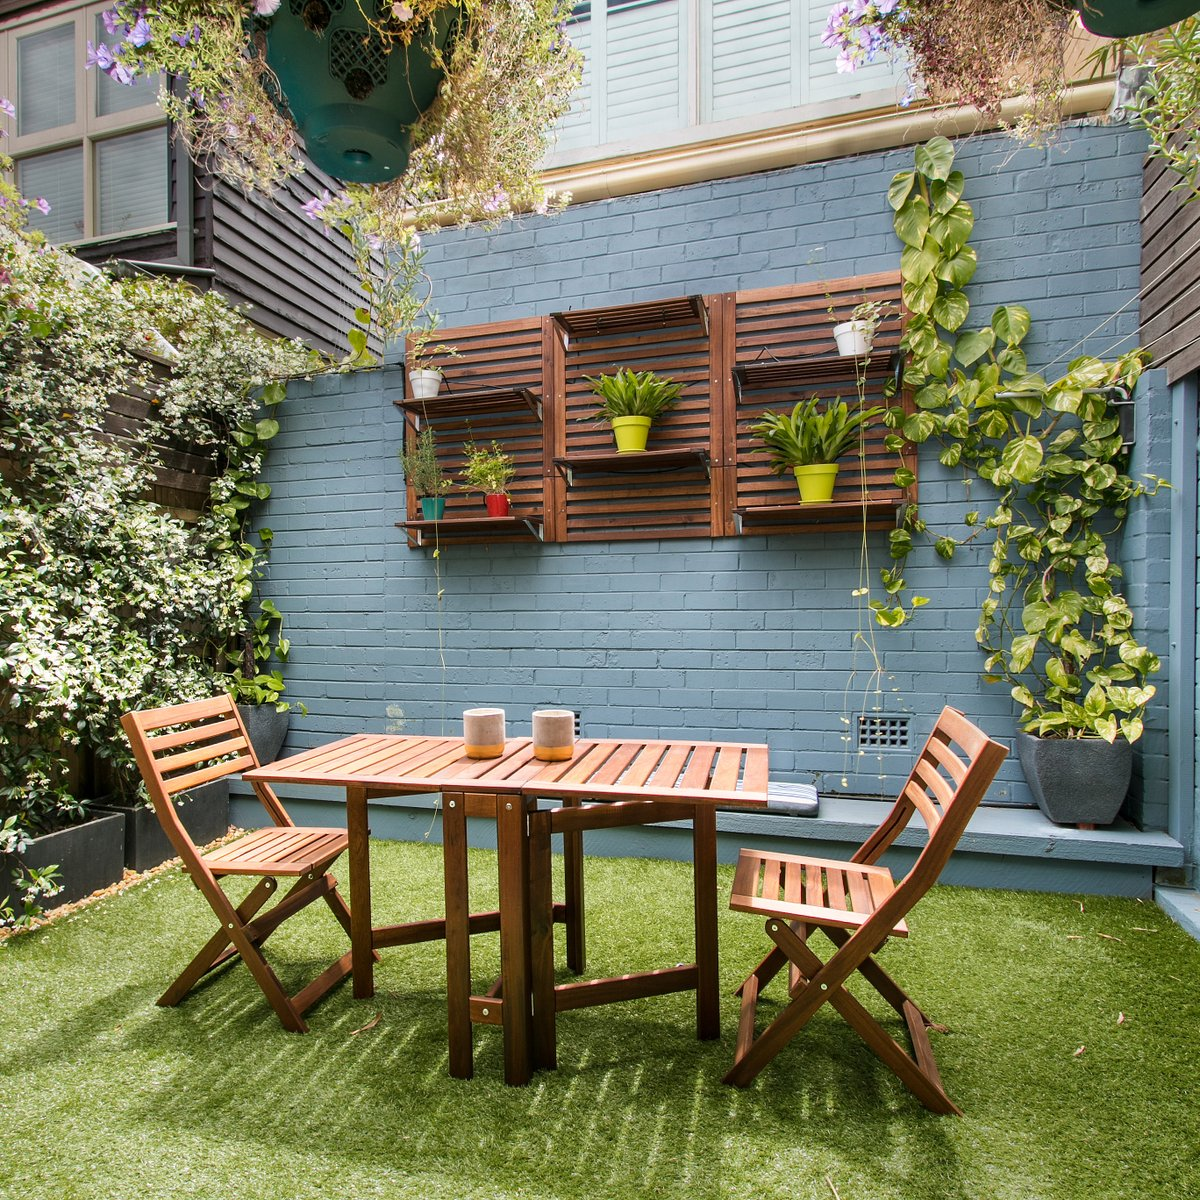 A friendly reminder that you can make the most of your weekends at home by lounging in your perfectly curated backyard that's ready for spring.   #stayathome #exteriors #exteriordesign #paintzenpic.twitter.com/65vgKoEqAI